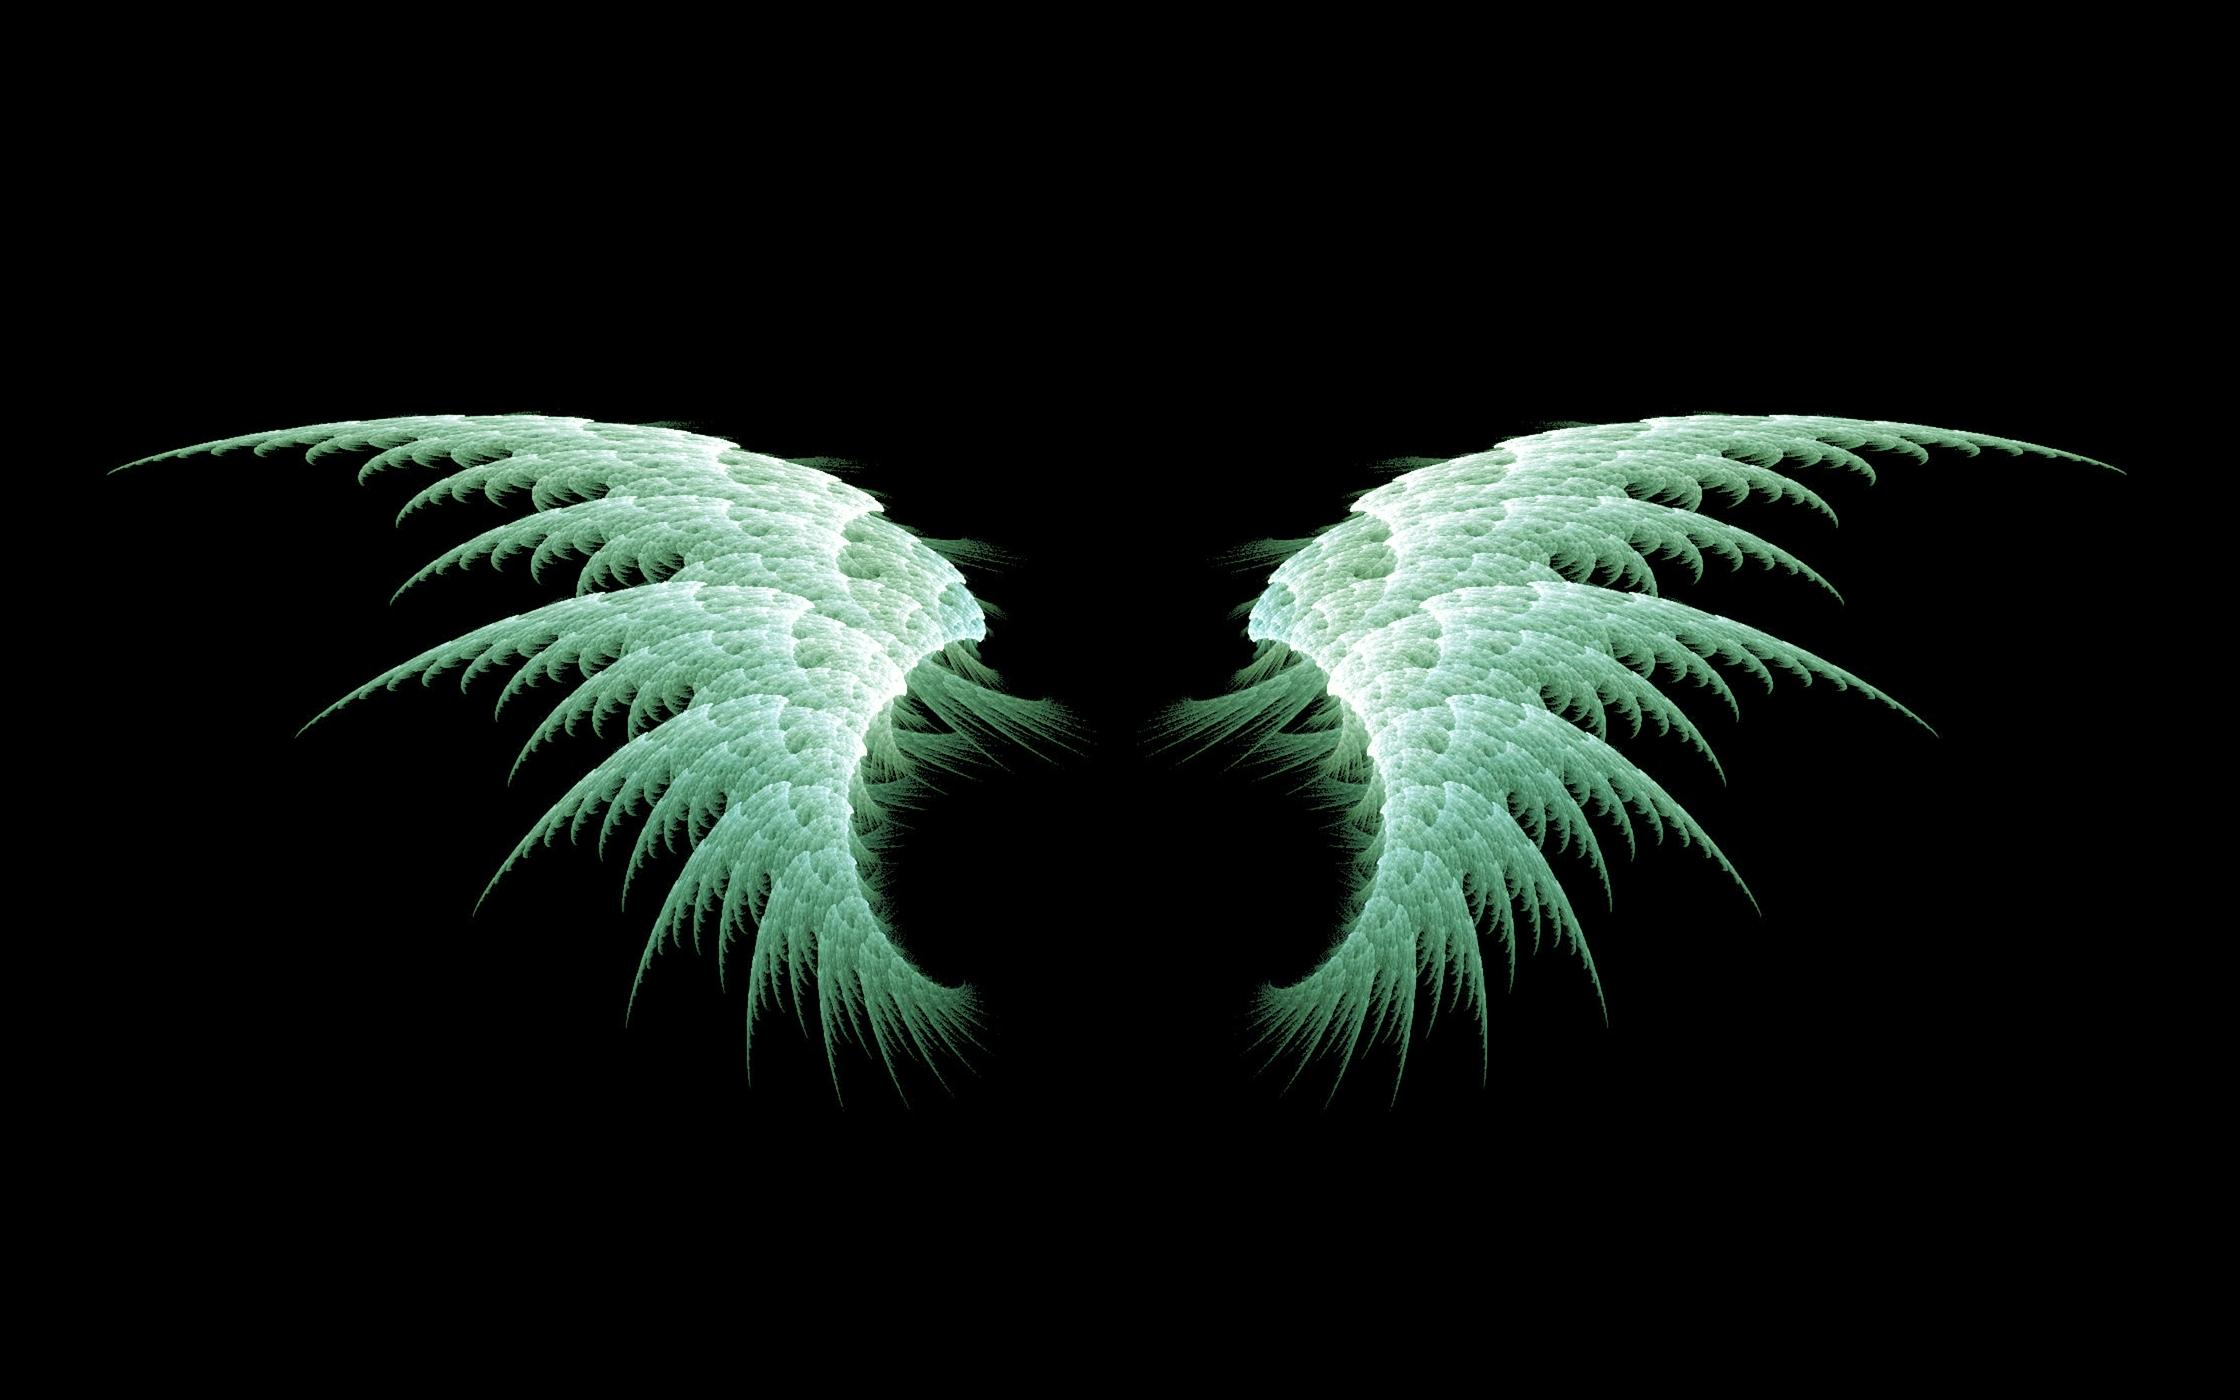 Wings Wallpapers HD Backgrounds Download   Baltana 2240x1400